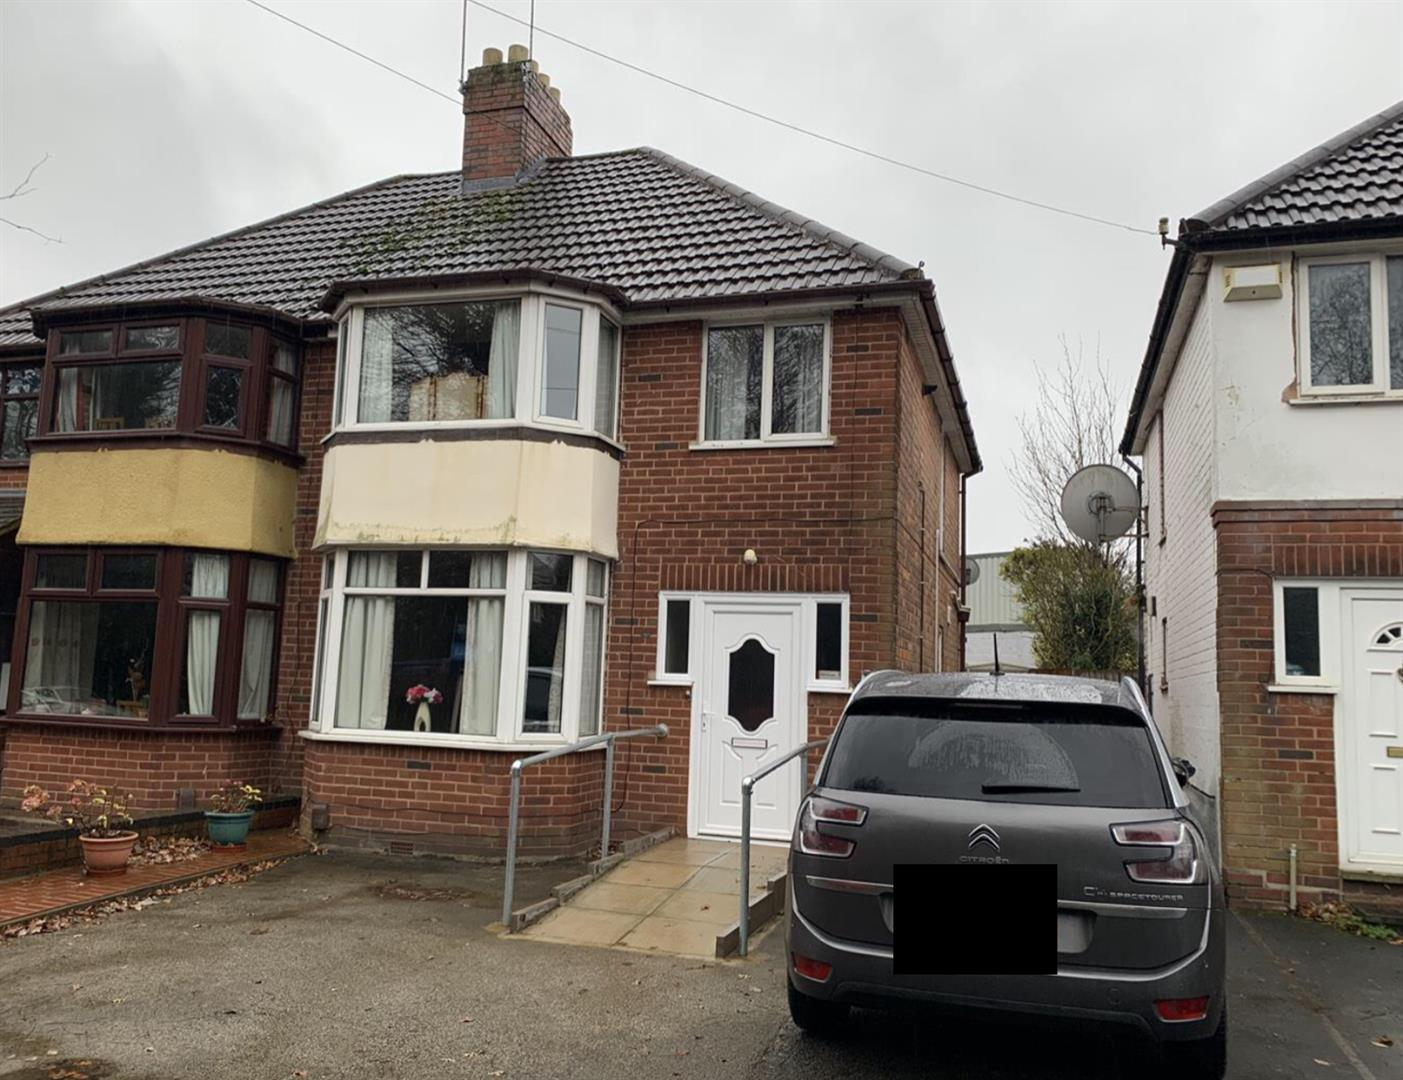 3 bed house for sale in Beeches Avenue, Acocks Green, Birmingham, B27